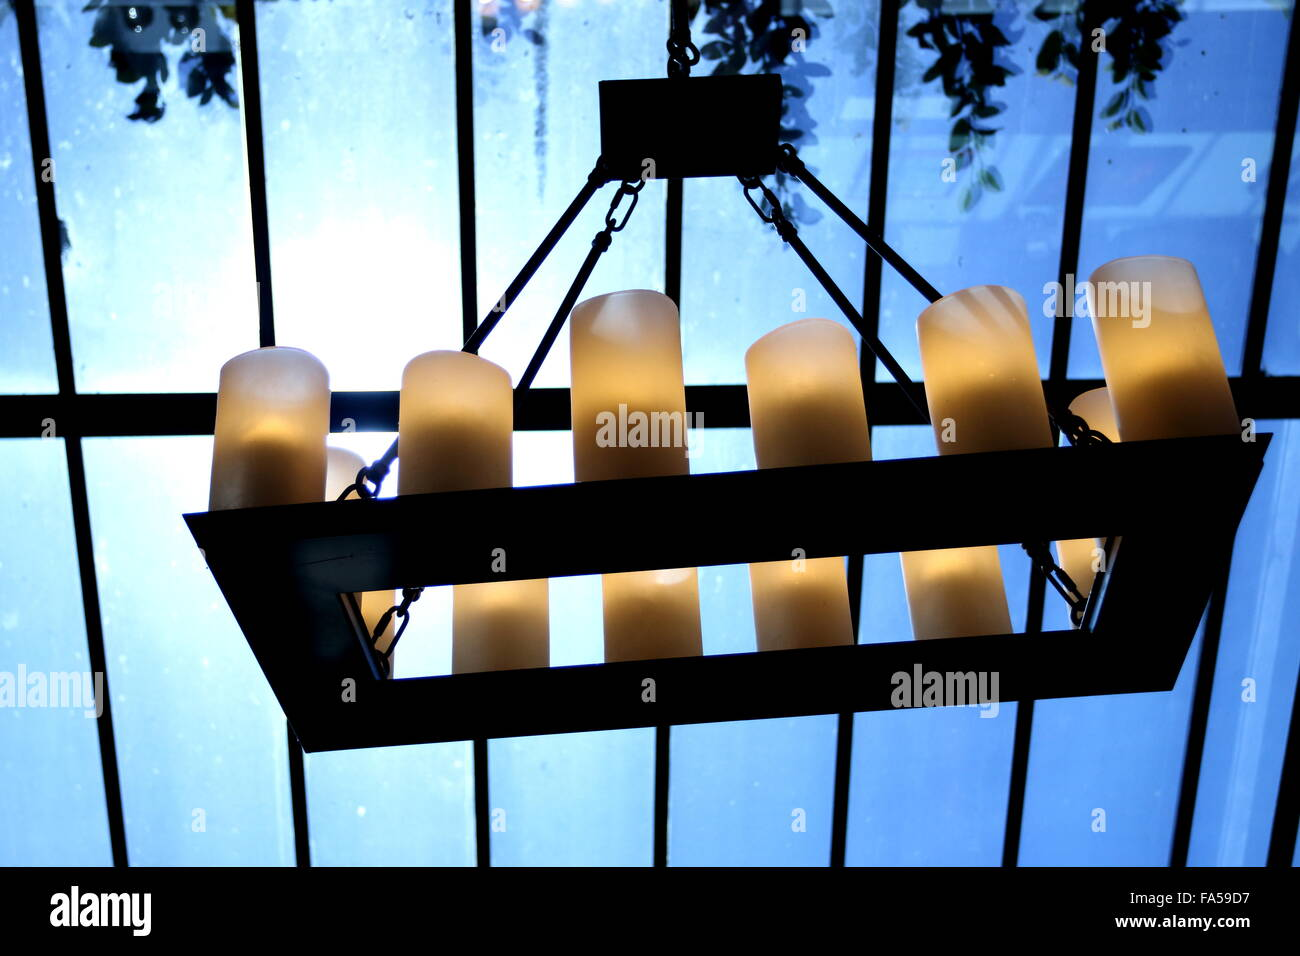 Hanging unlit candles near the clear glass ceiling - Stock Image